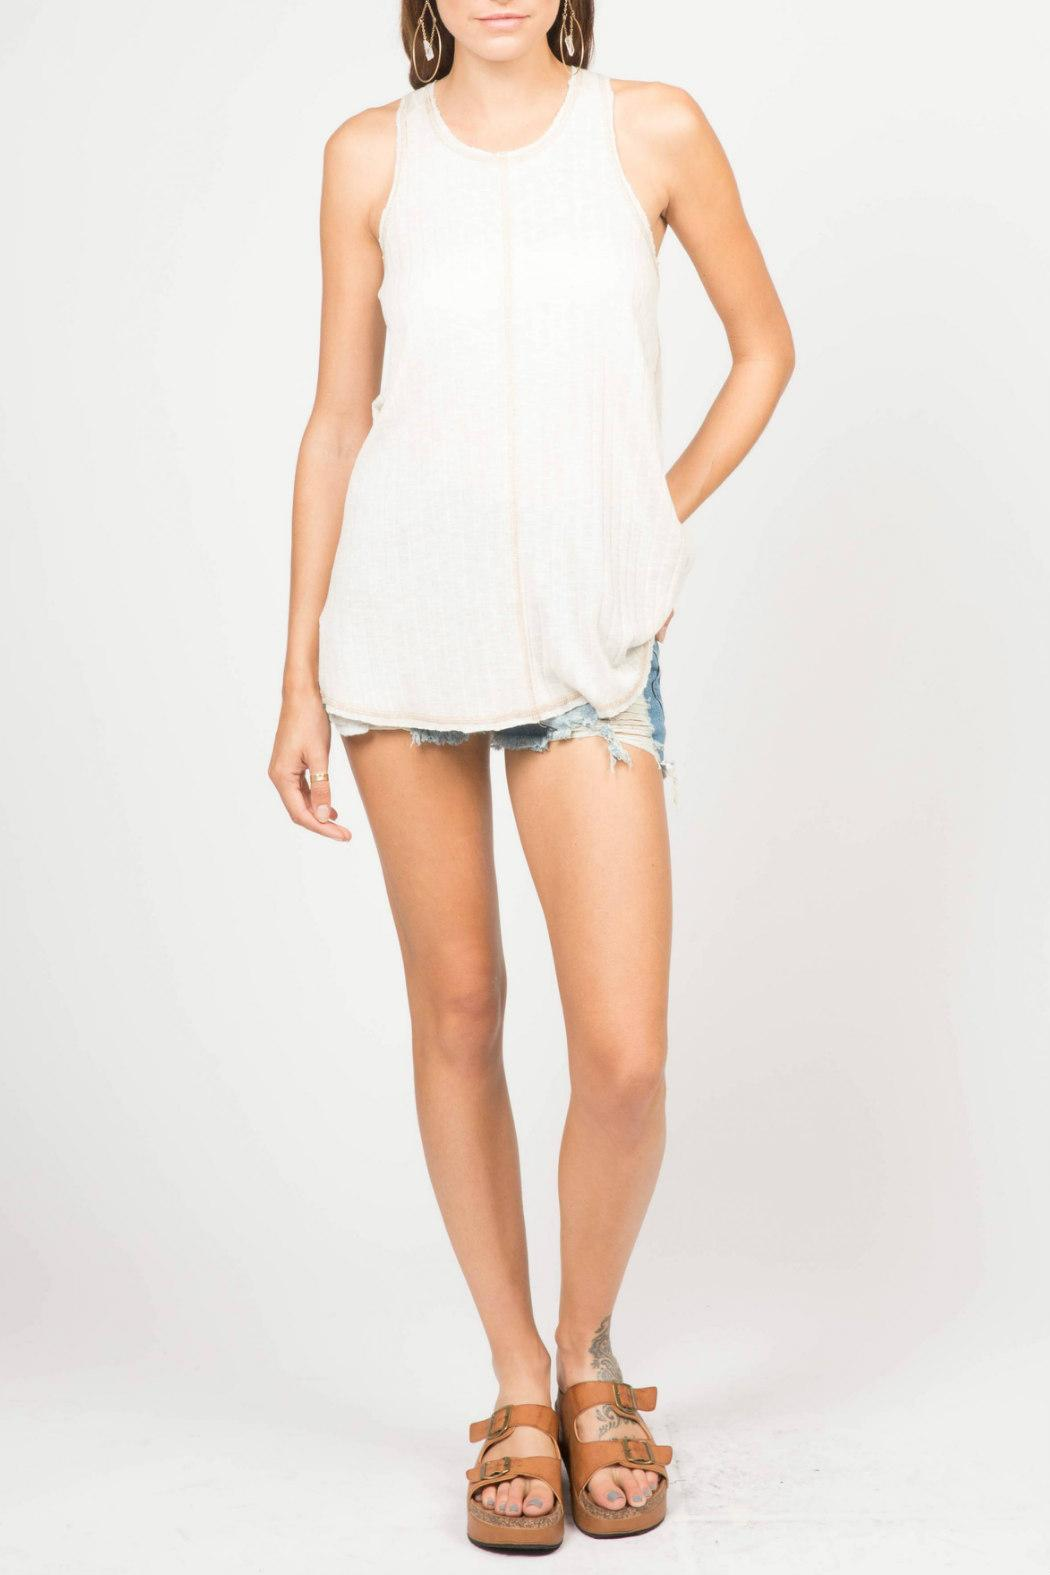 Ppla lea swing tank from statesboro by sole shoptiques for Lea boutique